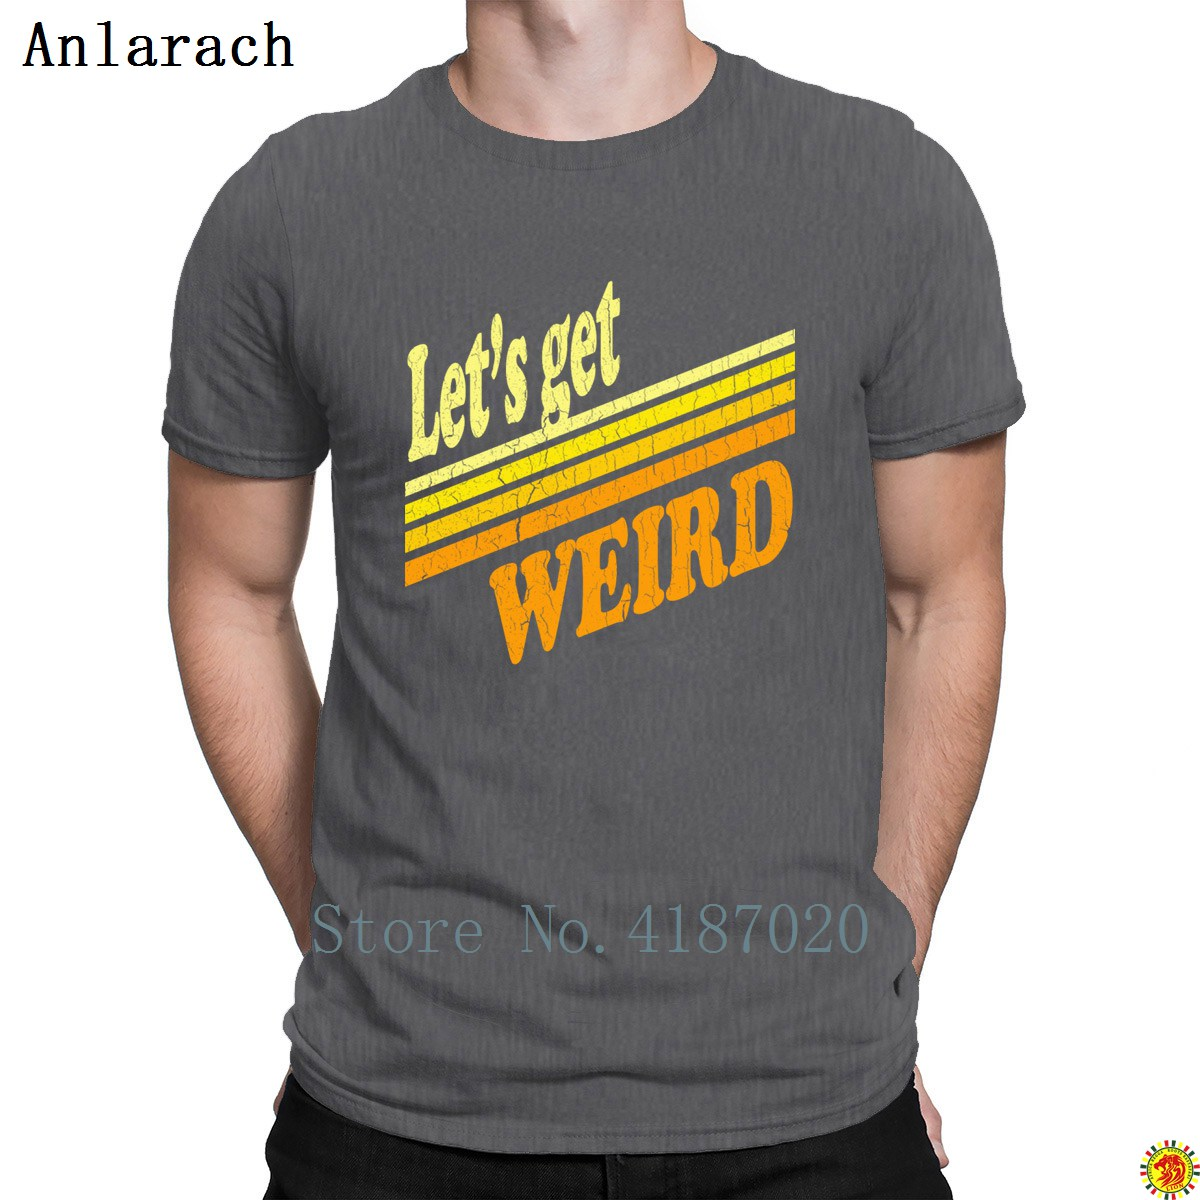 Weird T Shirts Designs 2